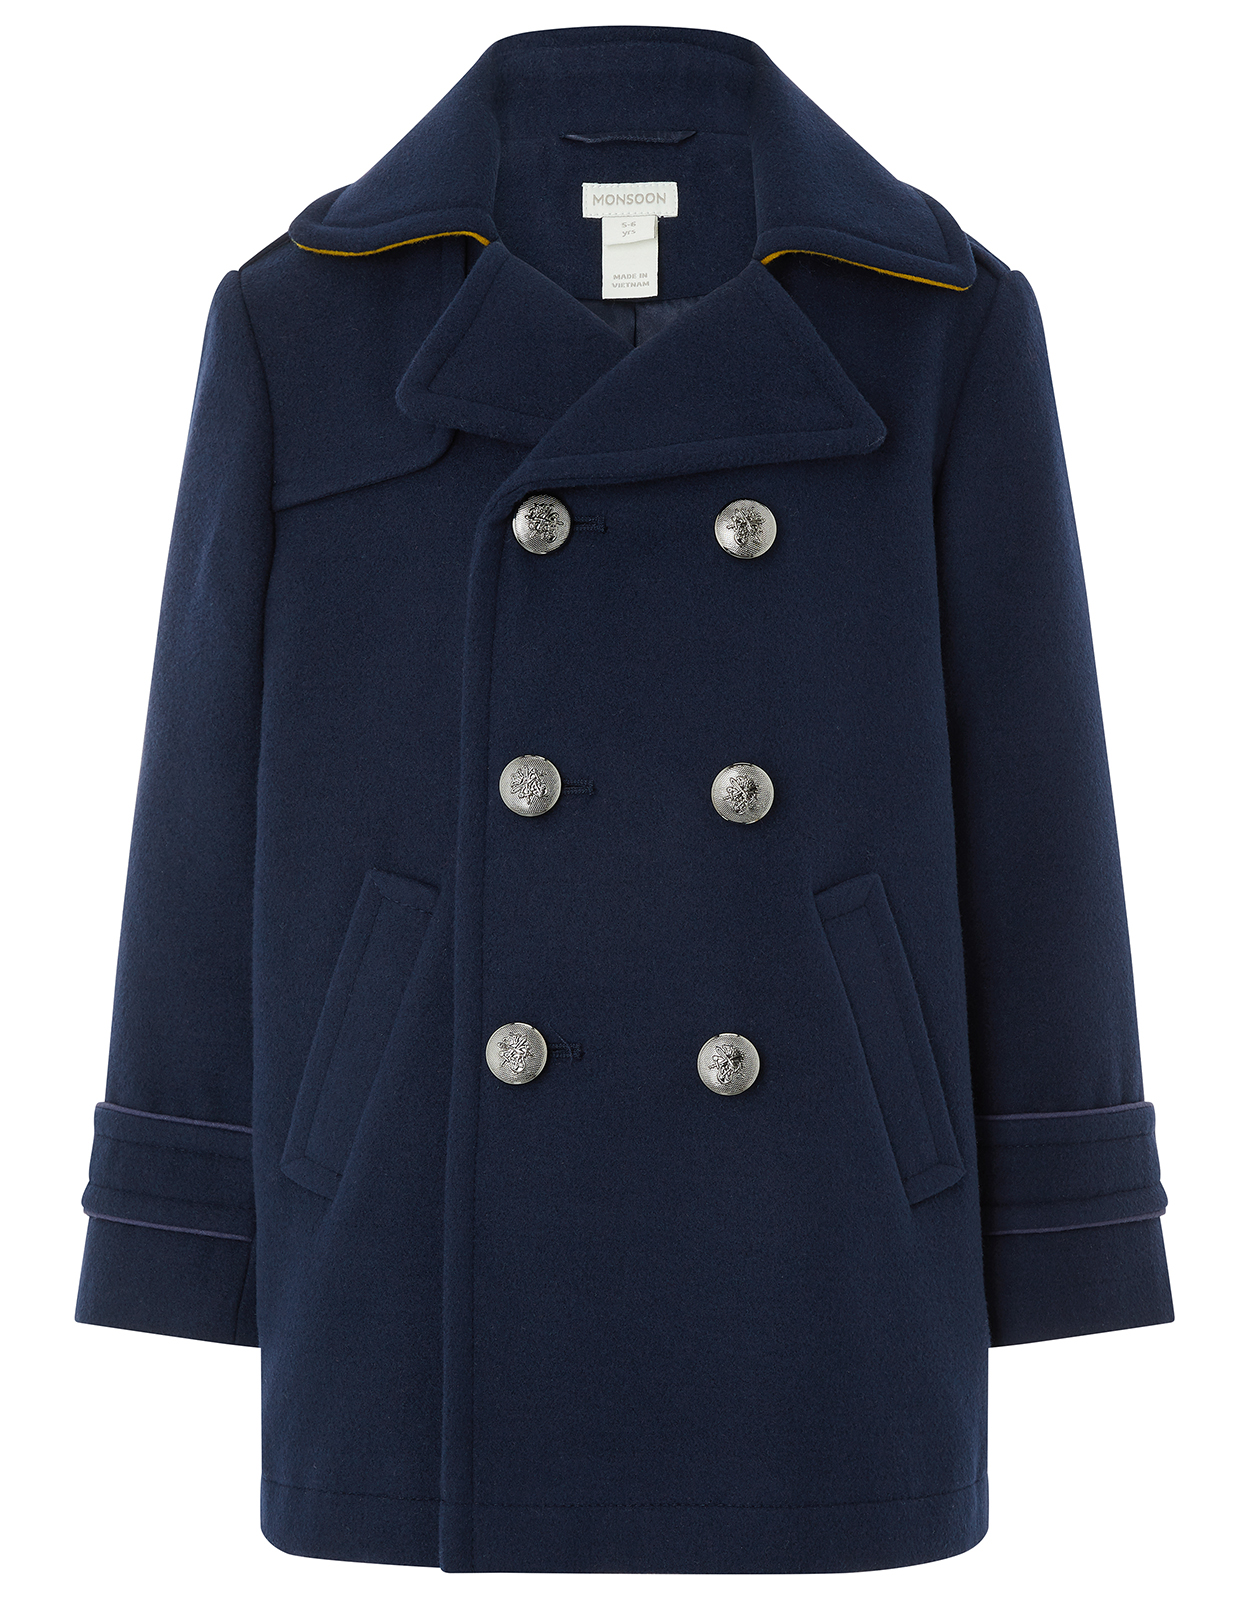 Monsoon Nate Navy Pea Coat